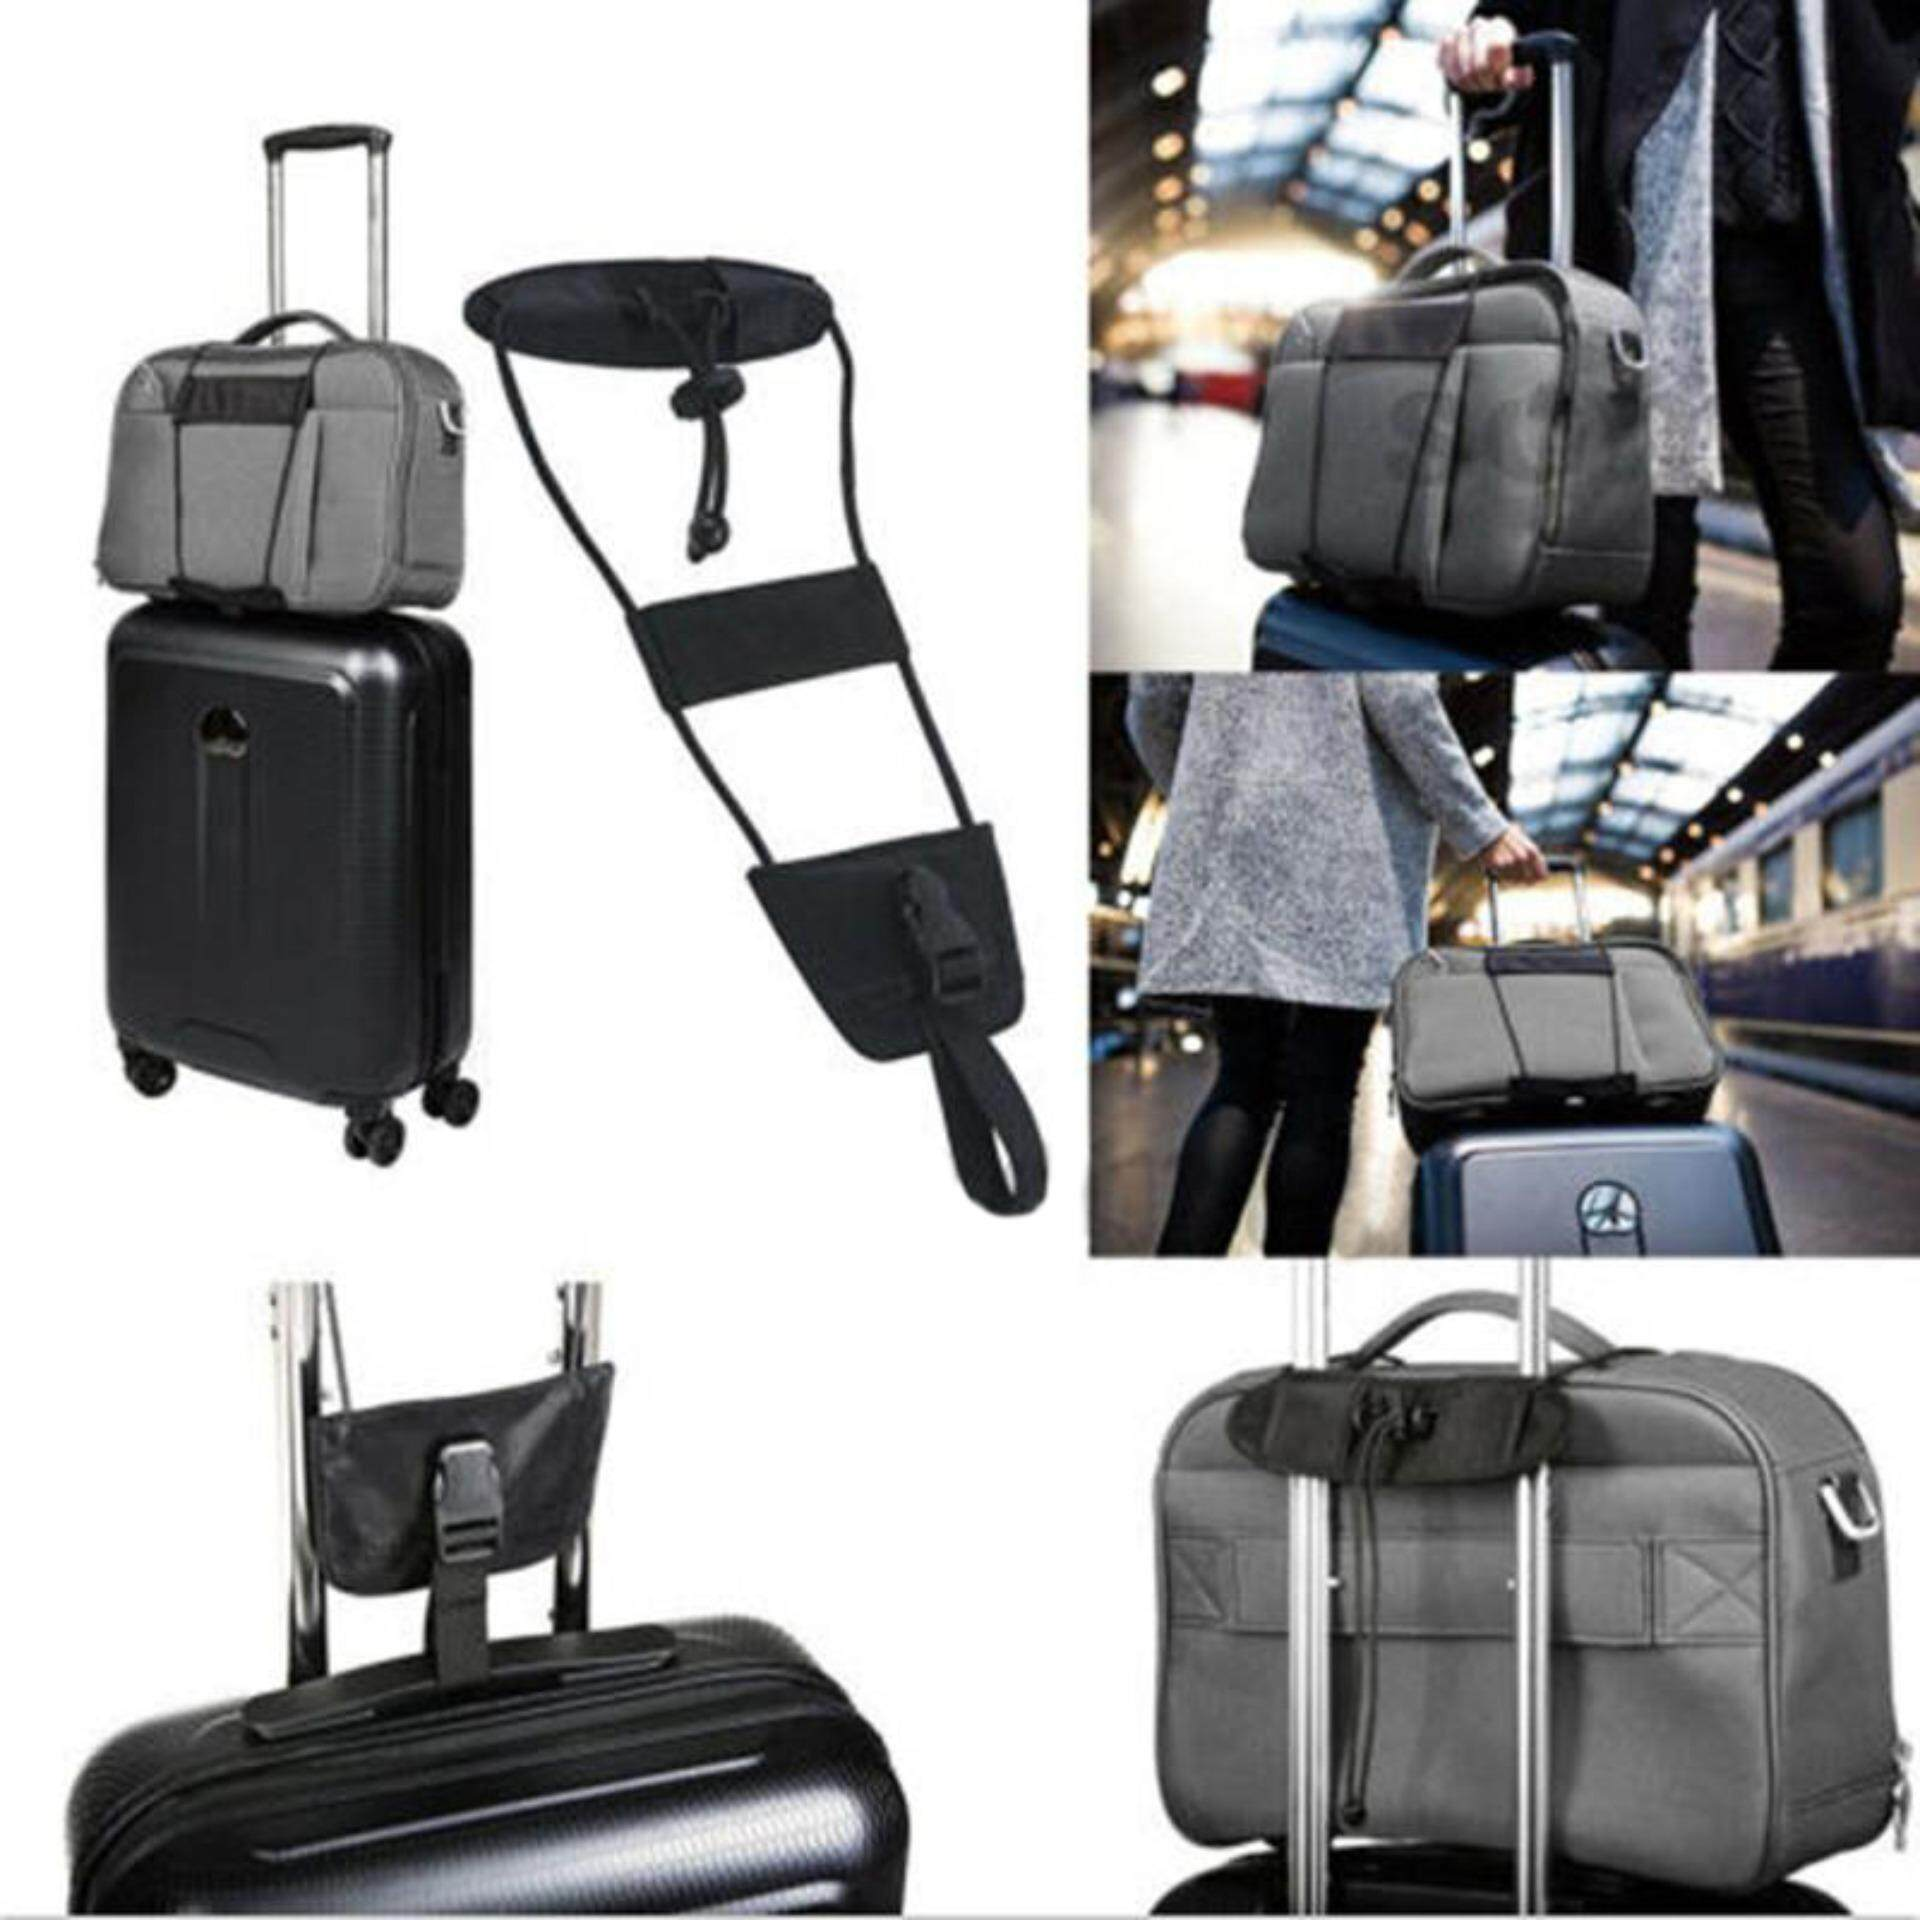 Travel Luggage Bag Bungee Suitcase Adjustable Belt Backpack Carrier Strap